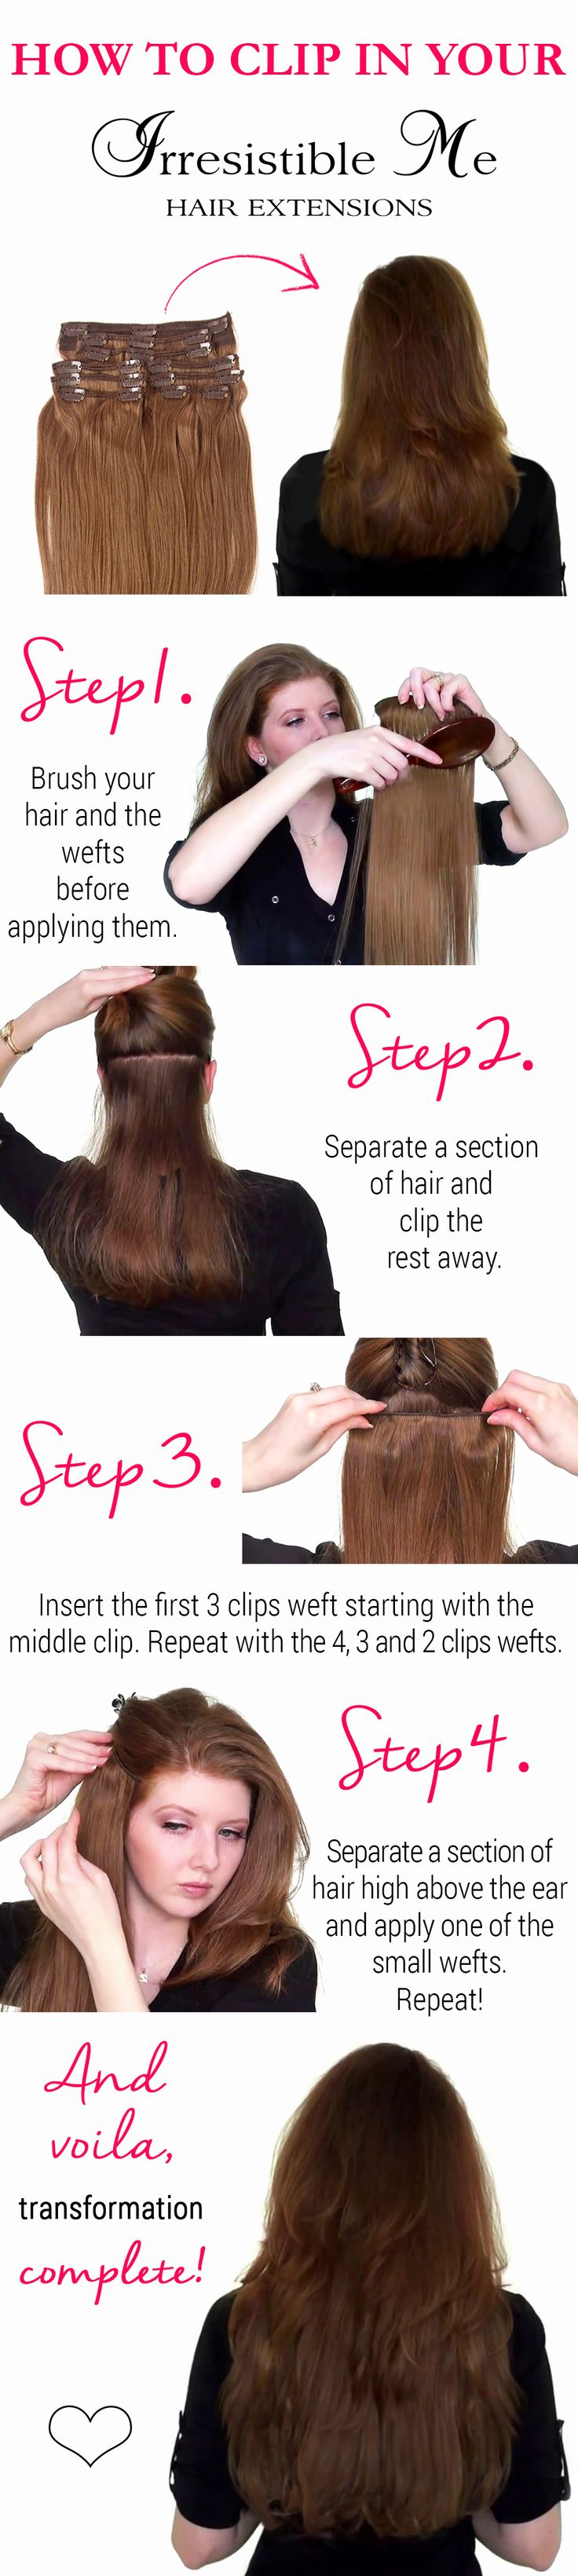 143 best hair extensions images on pinterest hairstyles braids add instant length and volume to your hair with irresistible me clip in hair extensions pmusecretfo Choice Image